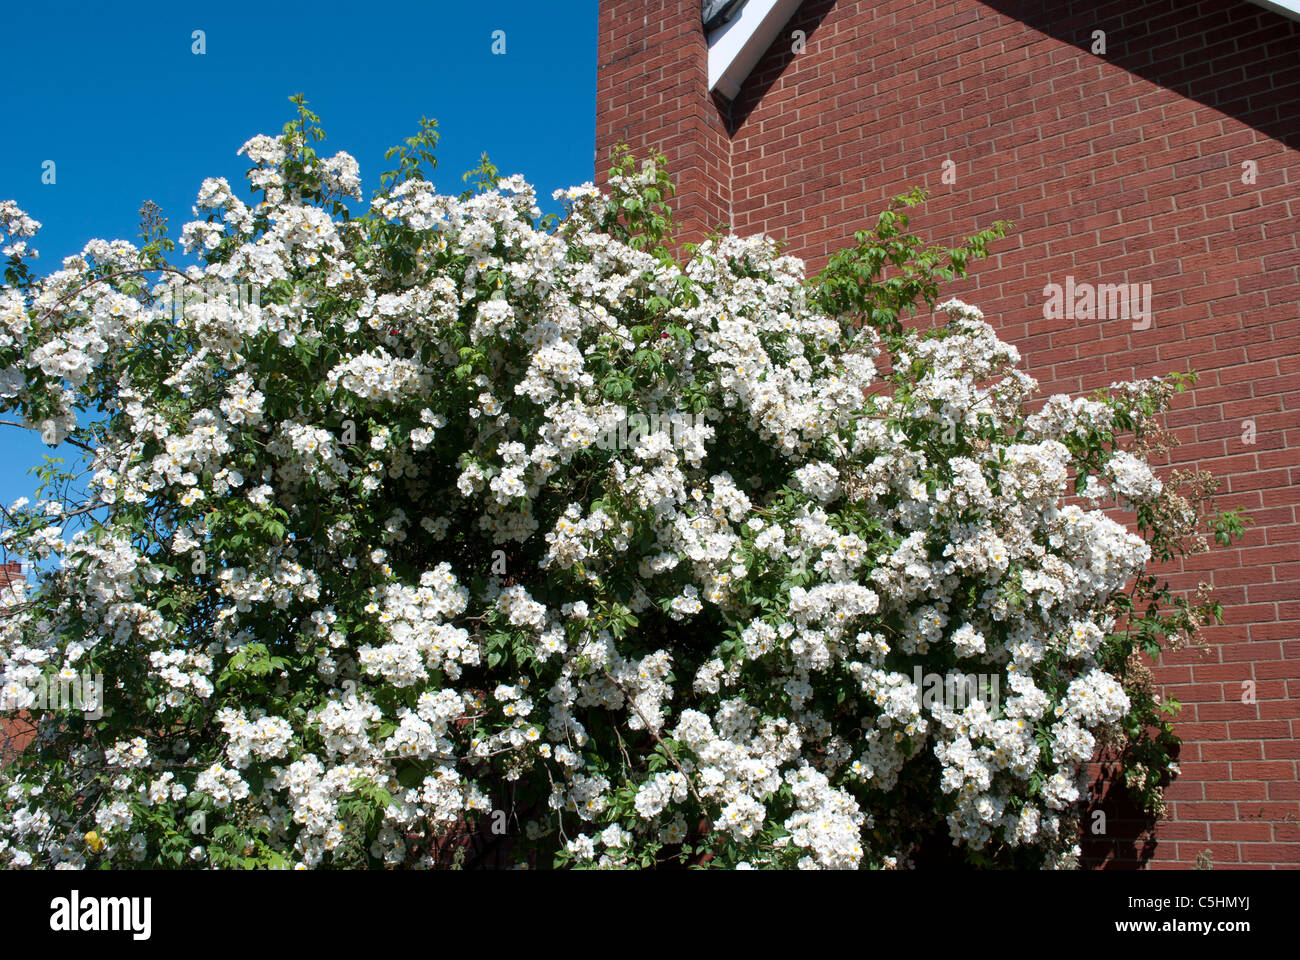 Pergola White Rambling Rose Rambling Stock Photos Pergola White